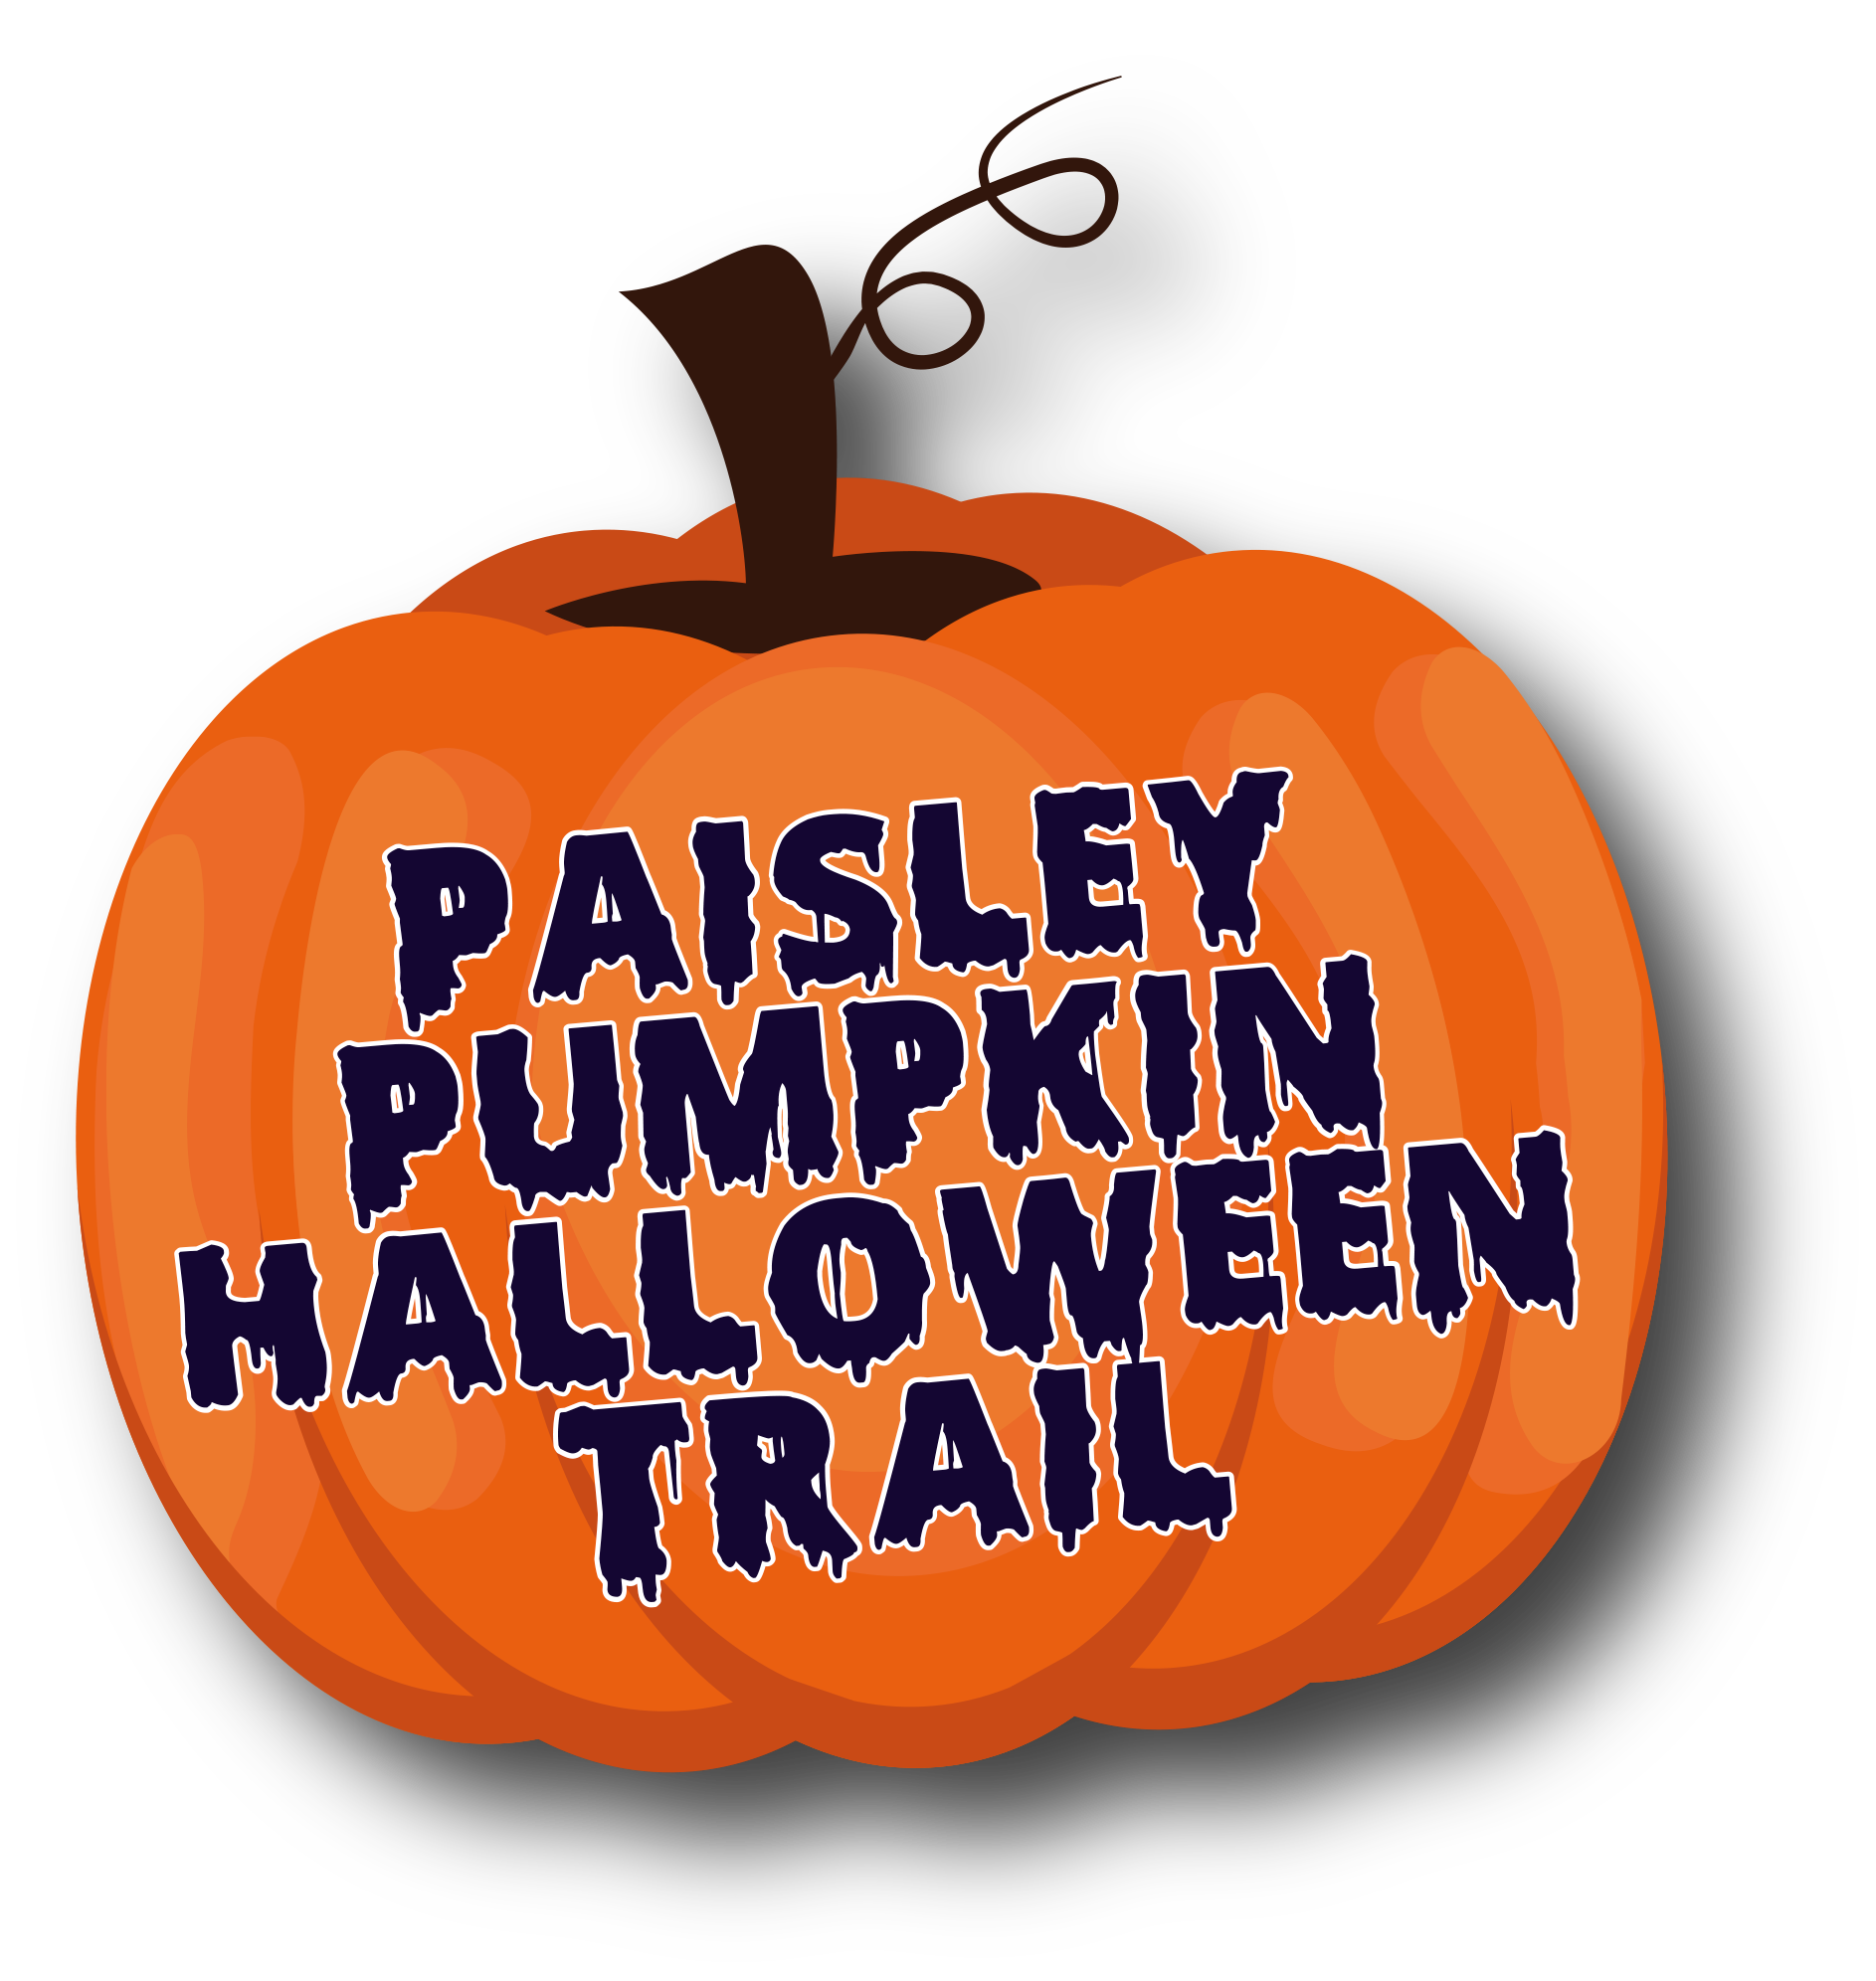 LOGO-Paisley-First-Halloween-Trail-1920x1080FB-02-10-2020